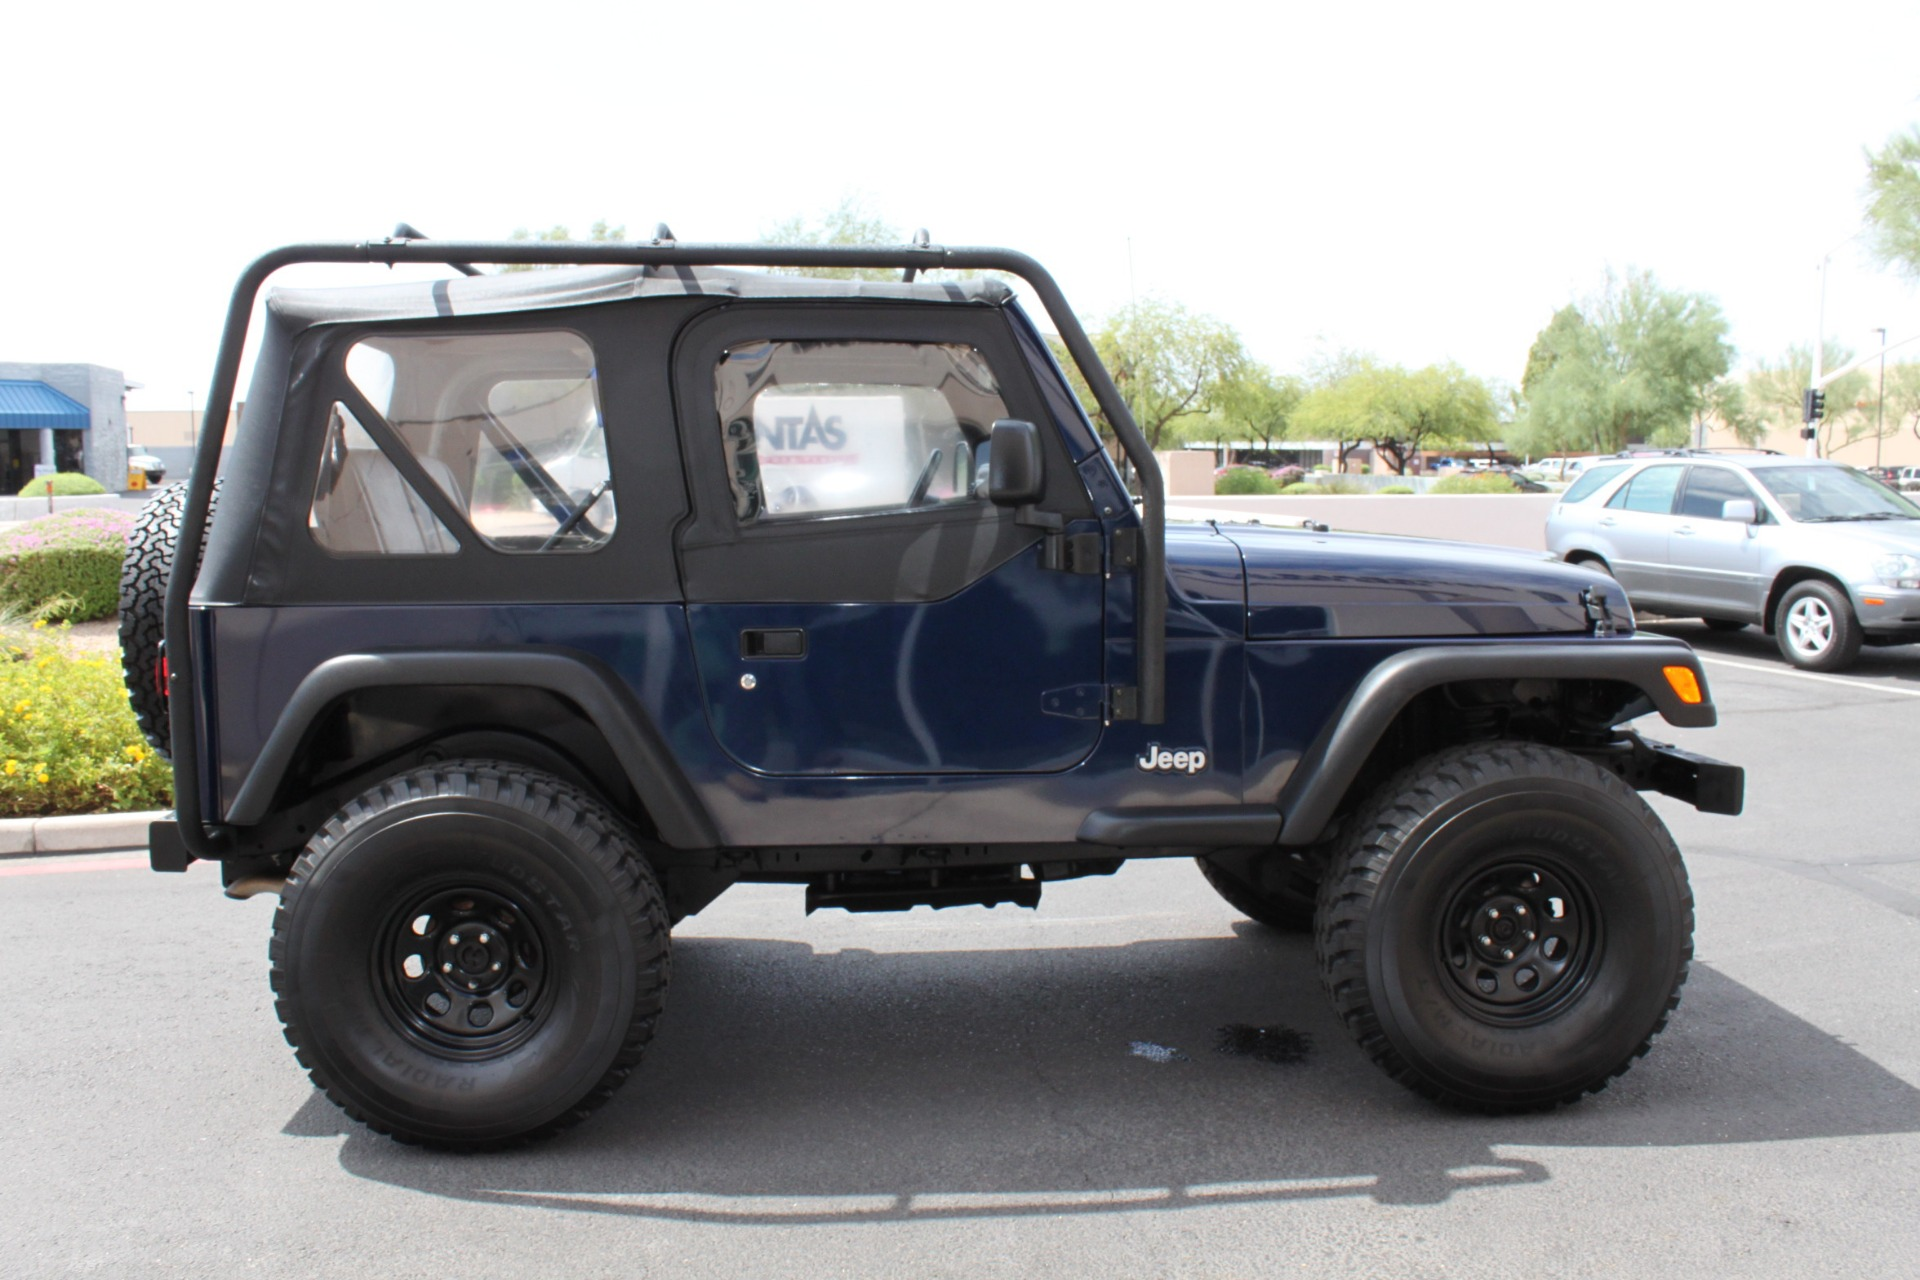 Used-2006-Jeep-Wrangler-4X4-40-Liter-Inline-6-Chrysler